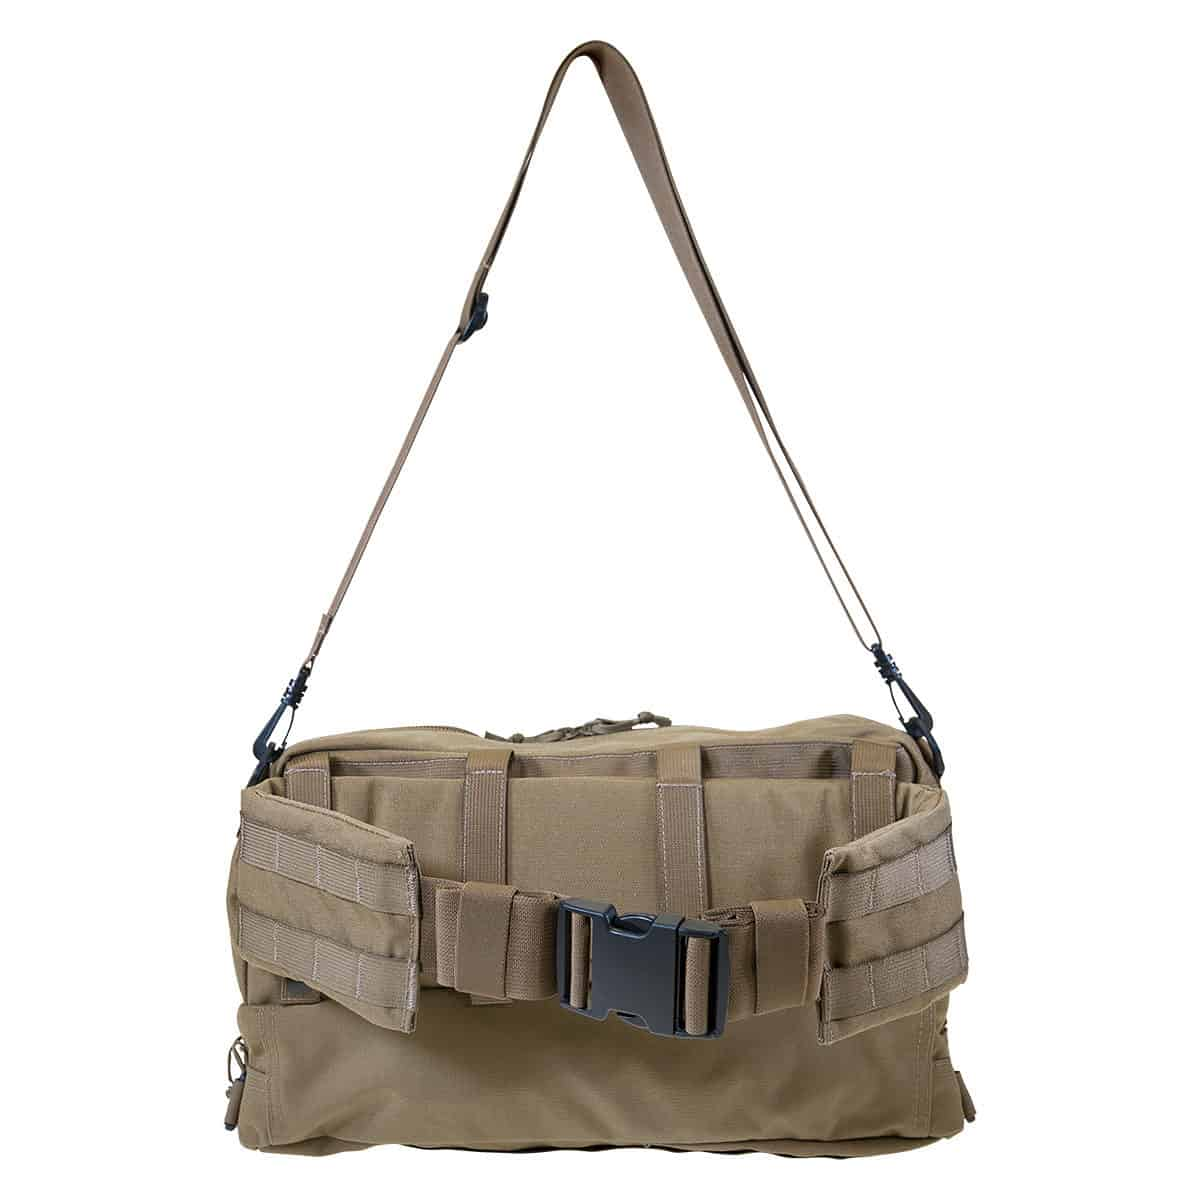 mojo combat life saver bag closed back with strap coyote brown